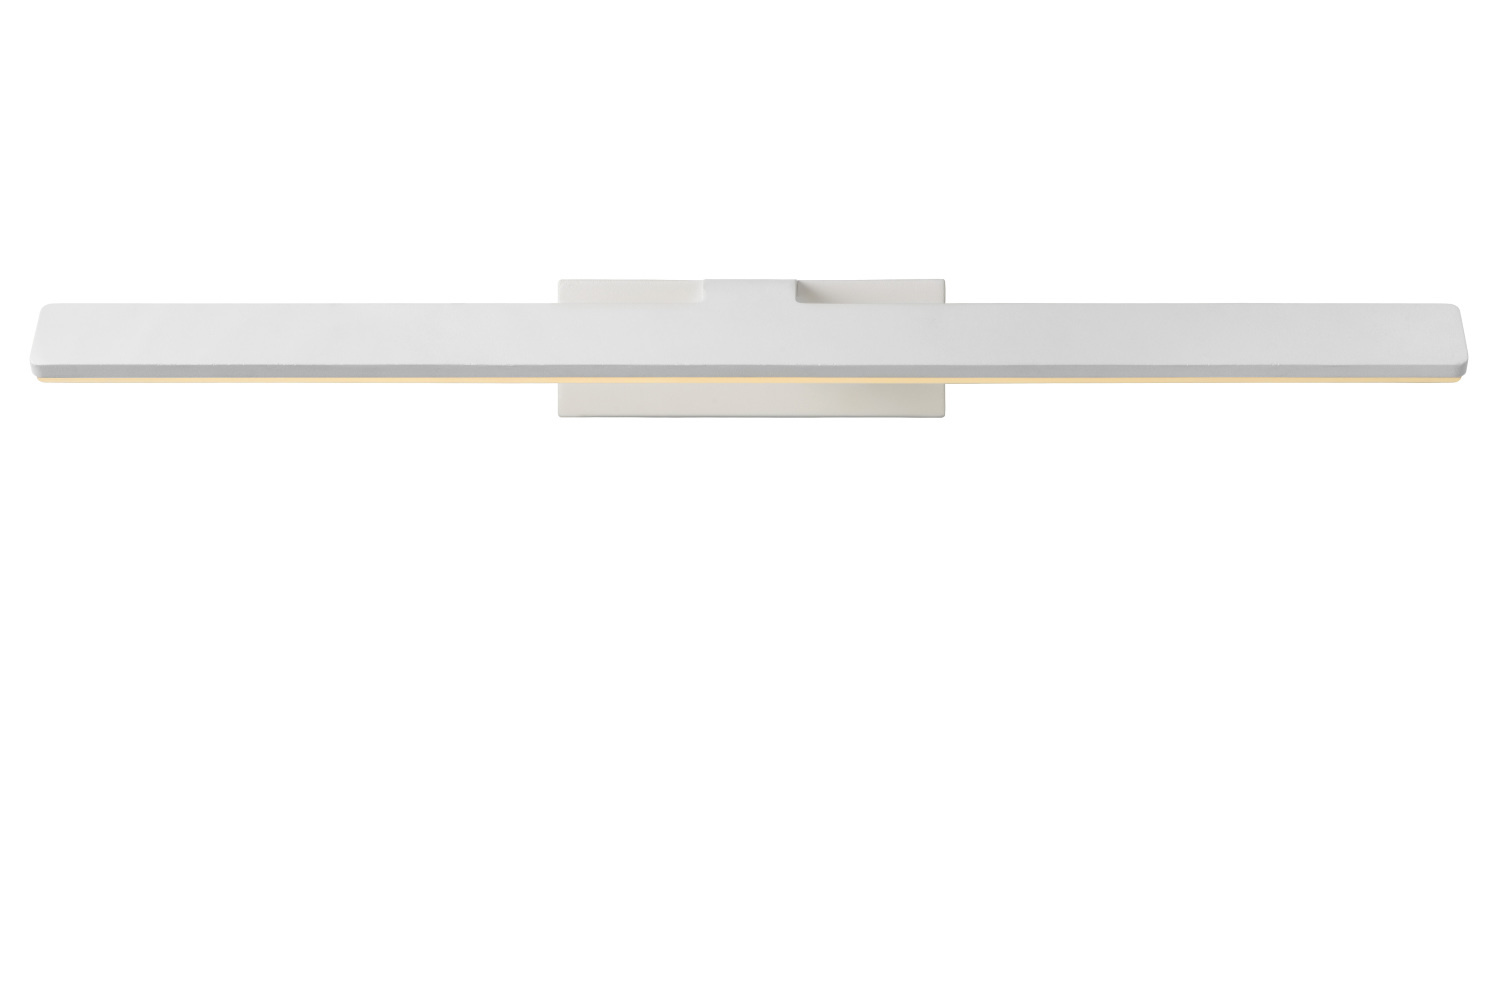 Lucide BETHAN Wandlicht LED 12W L61cm 1008LM 3000K Wit